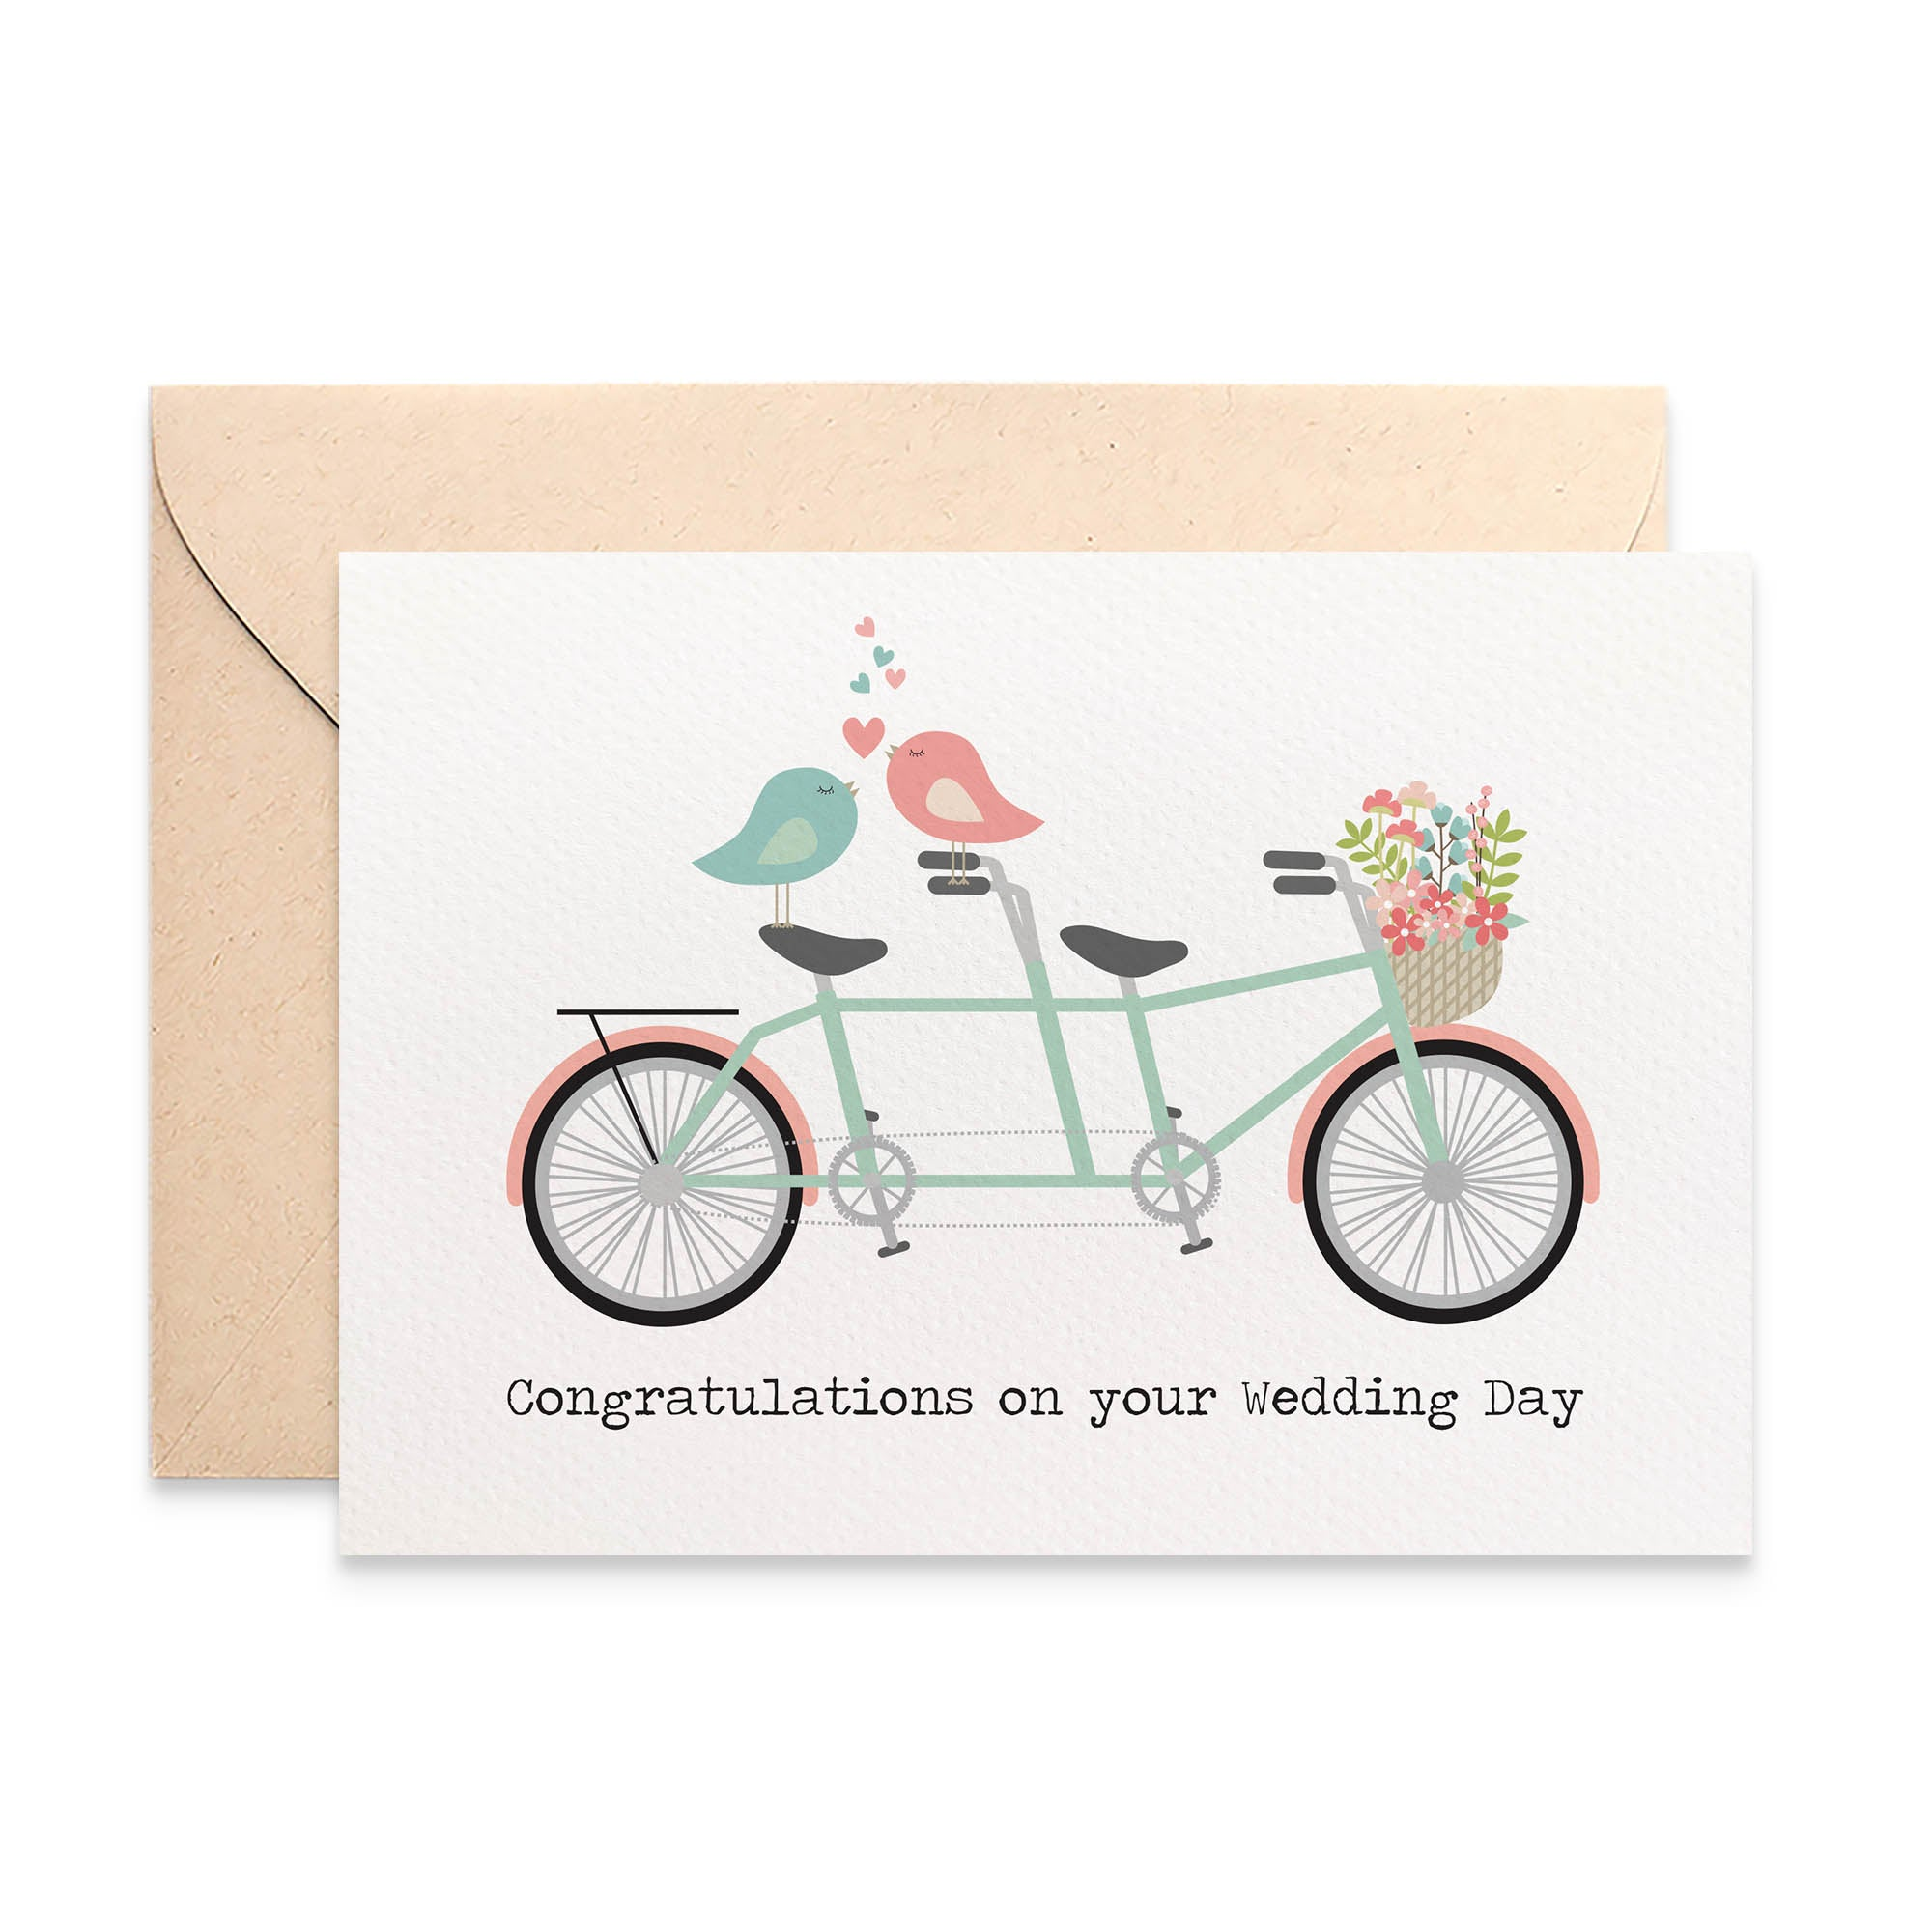 Tandem Bike with Love Birds Greeting Card by mumandmehandmadedesigns- An Australian Online Stationery and Card Shop